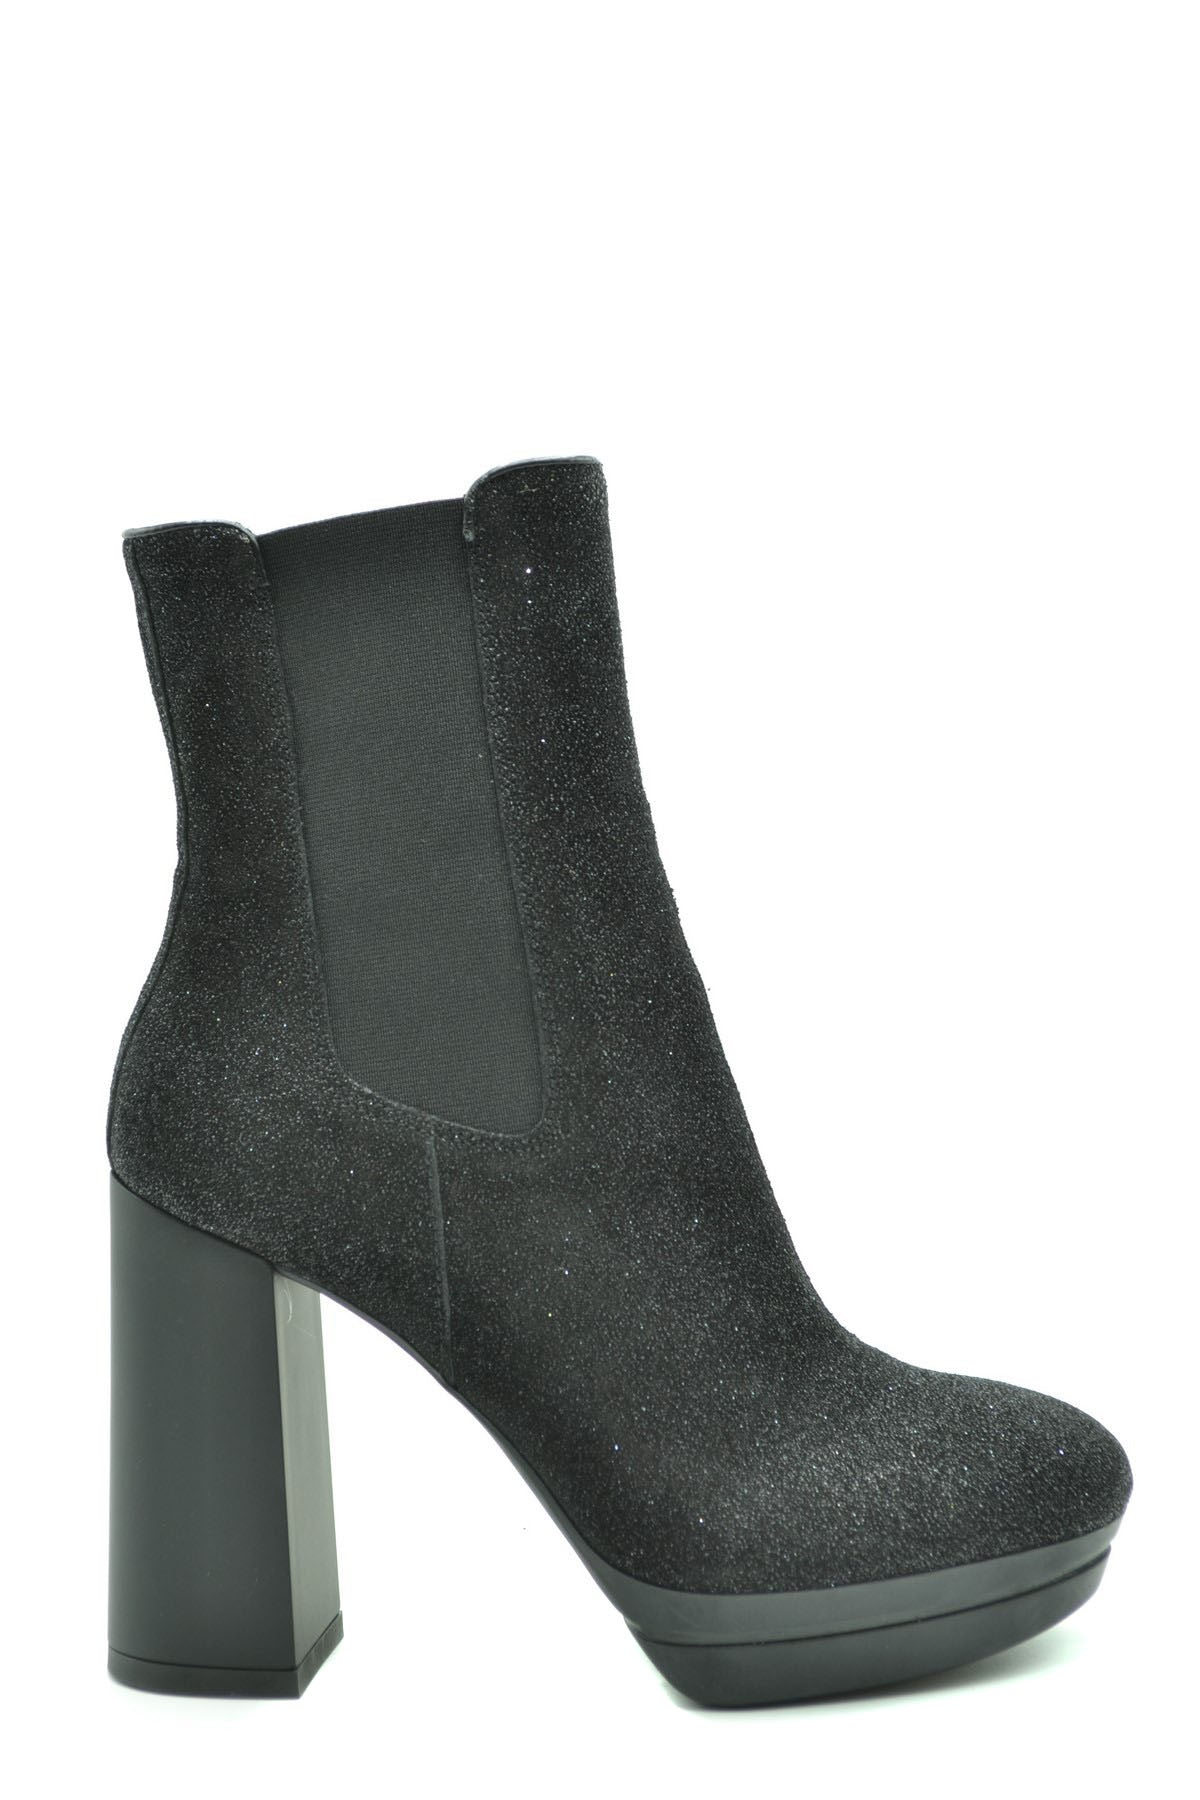 Shoes Hogan-Women's Fashion - Women's Shoes - Women's Boots-35-Product Details Terms: New With LabelMain Color: BlackType Of Accessory: BootsSeason: Fall / WinterMade In: ItalyGender: WomanHeel'S Height: 11Size: EuComposition: Leather 100%Year: 2020Manufacturer Part Number: Hxw3910Au80P0Fb999-Keyomi-Sook